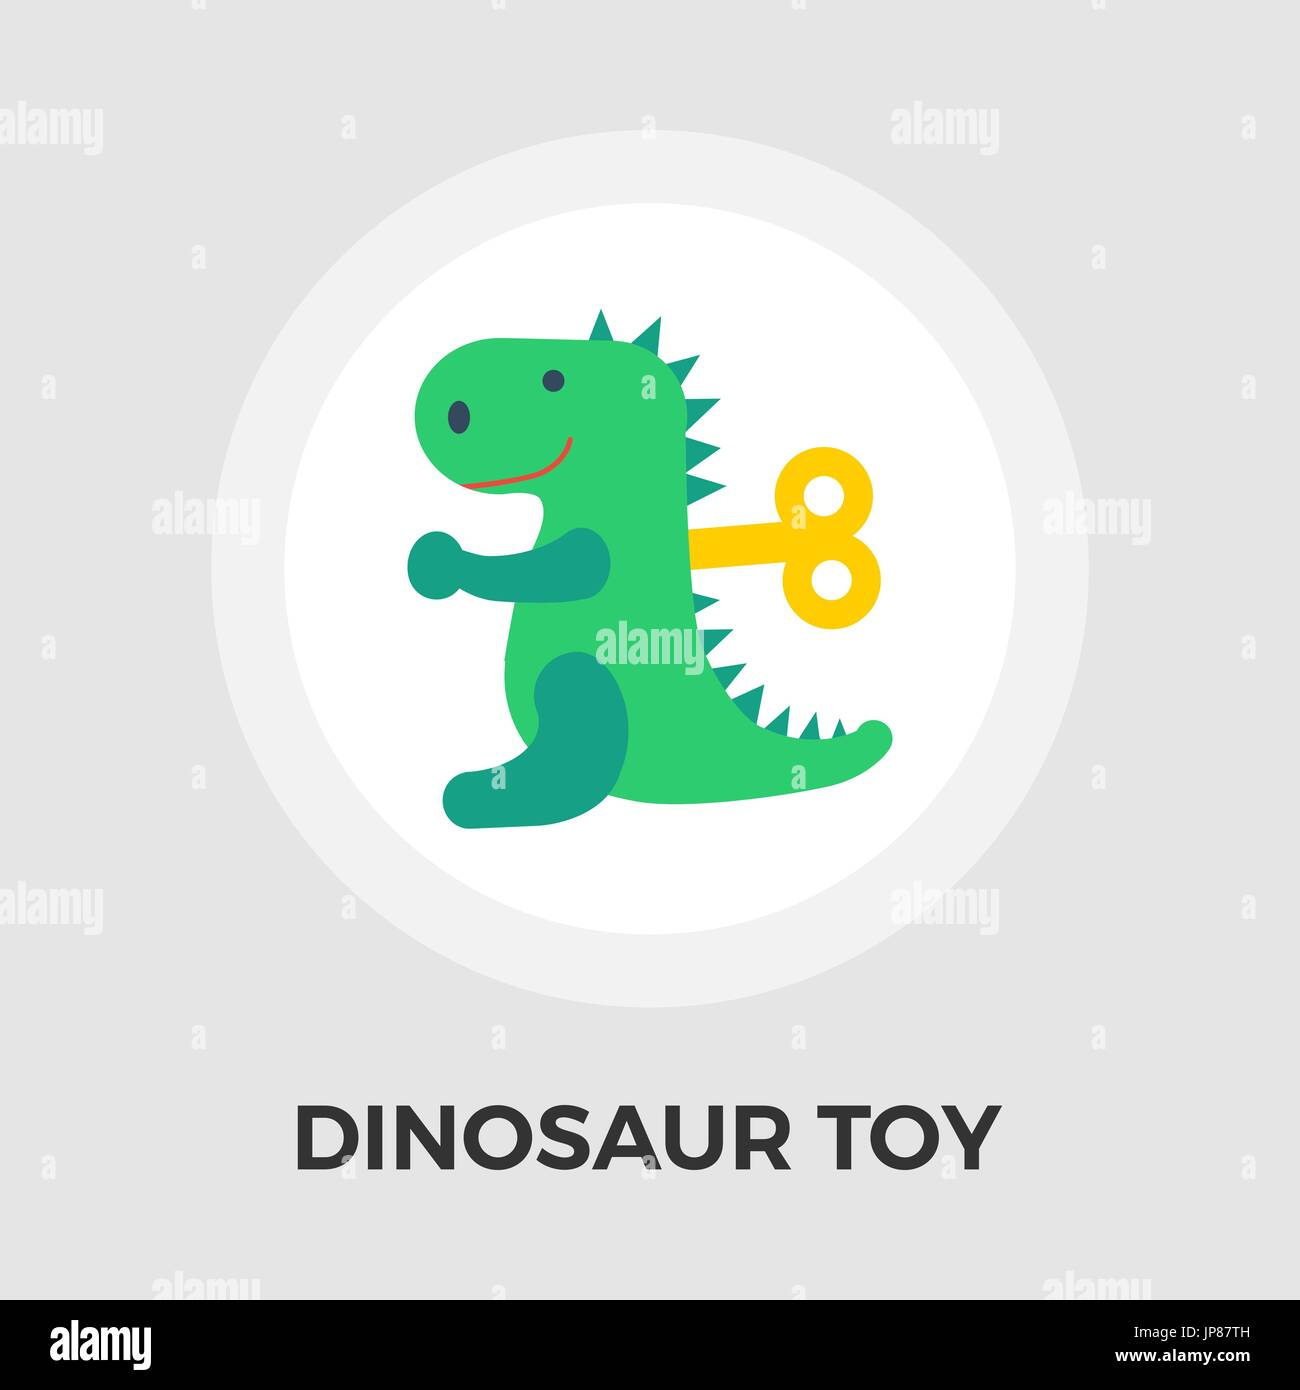 Dinosaurus icon vector. Flat icon isolated on the white background. Editable EPS file. Vector illustration. Stock Vector